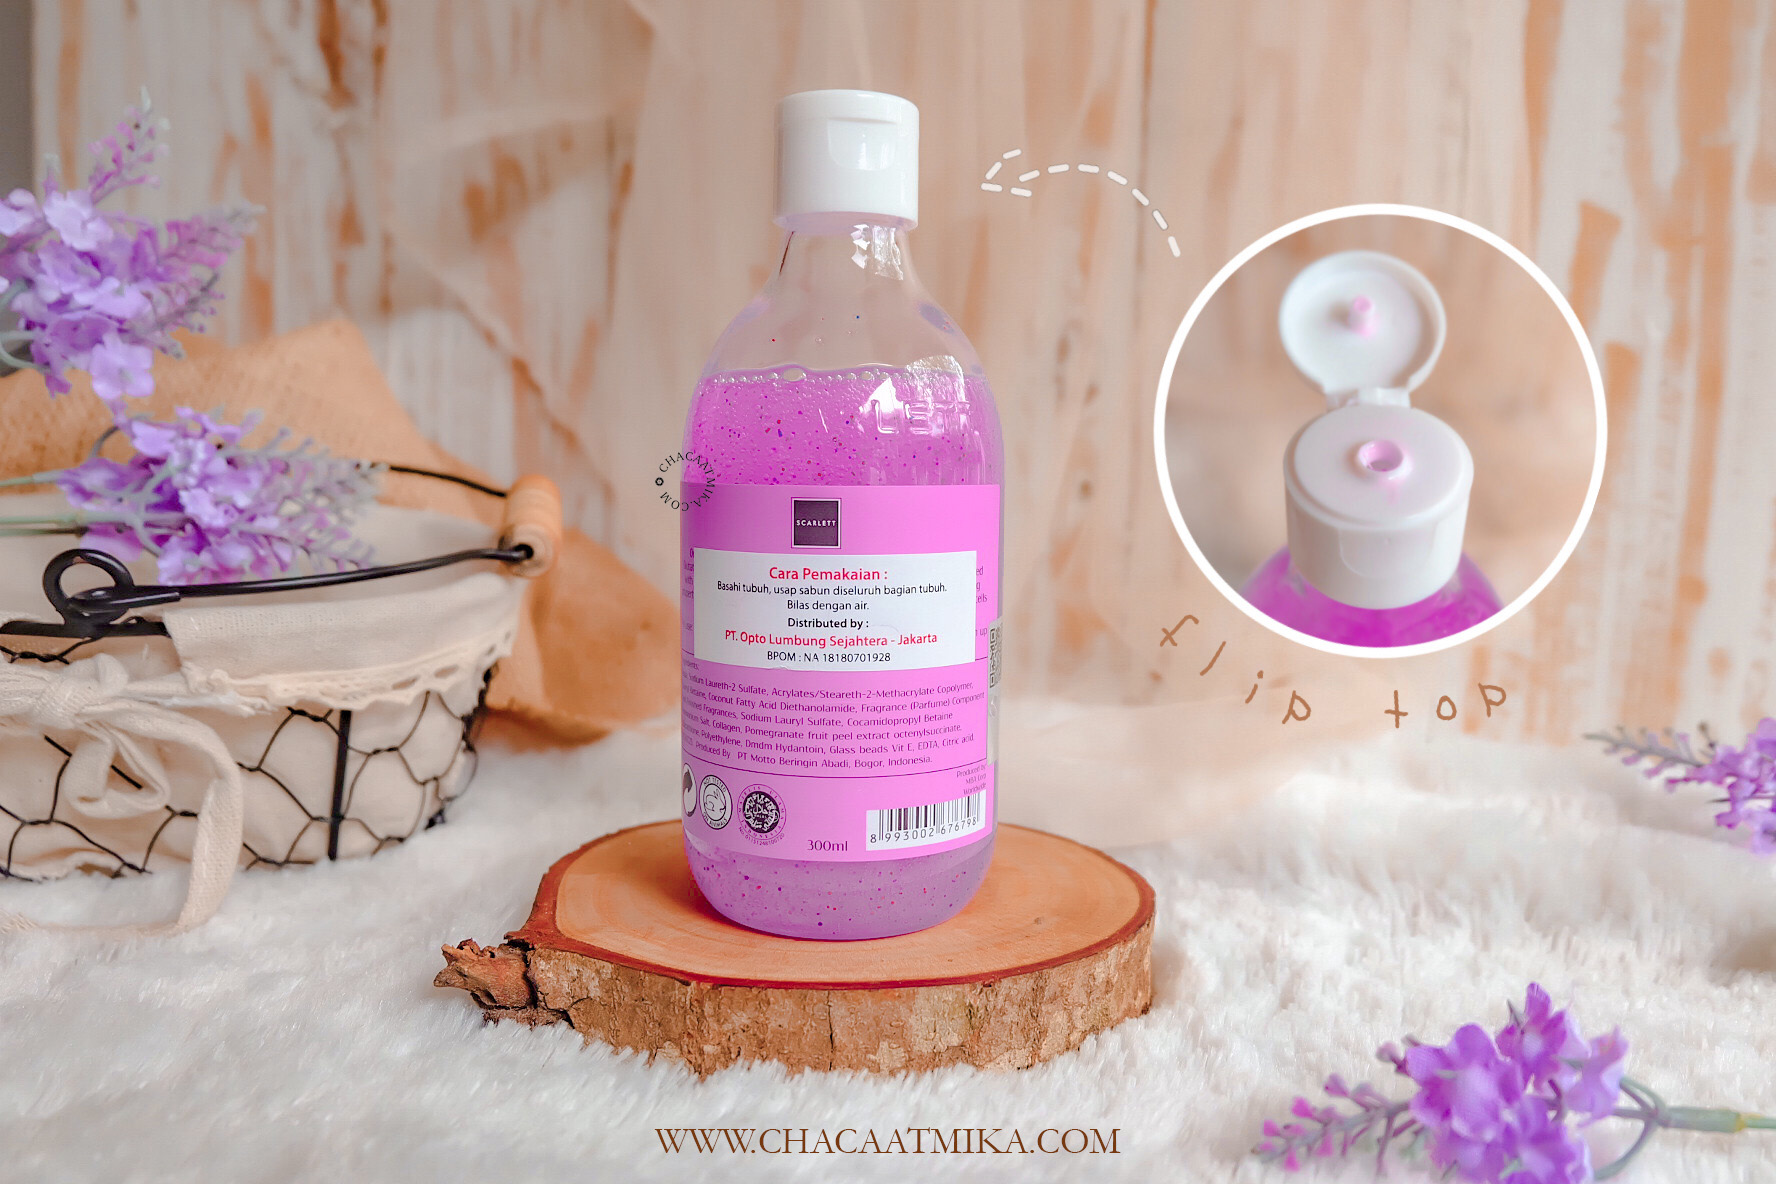 Harga Scarlett Whitening Shower Scrub